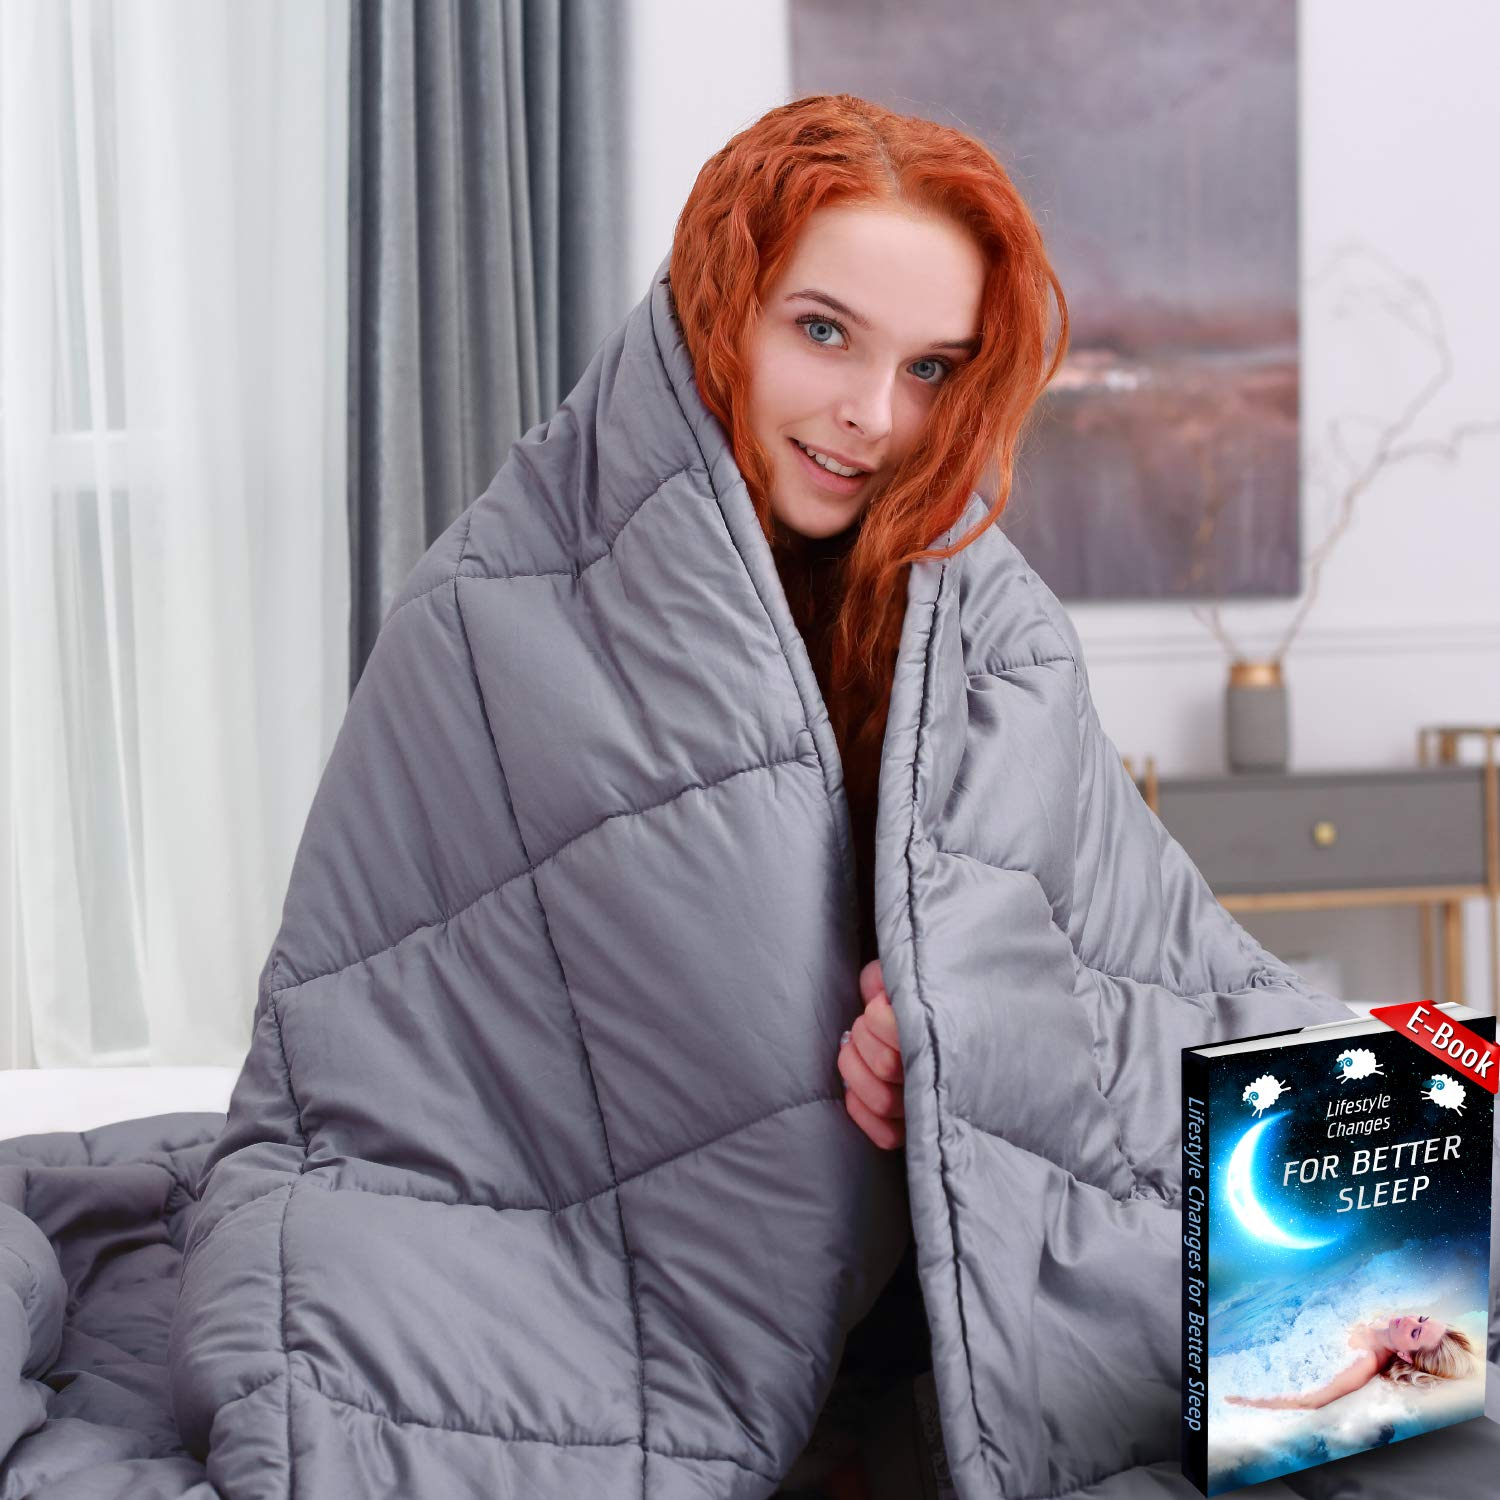 Luxurious Weighted Blanket 20 lbs 60x80 inches - Queen Size - for Individual Between 160-200+ lbs - Heavy Blanket - 100% Soft Breathable Cotton - Grey Color by Zotlex